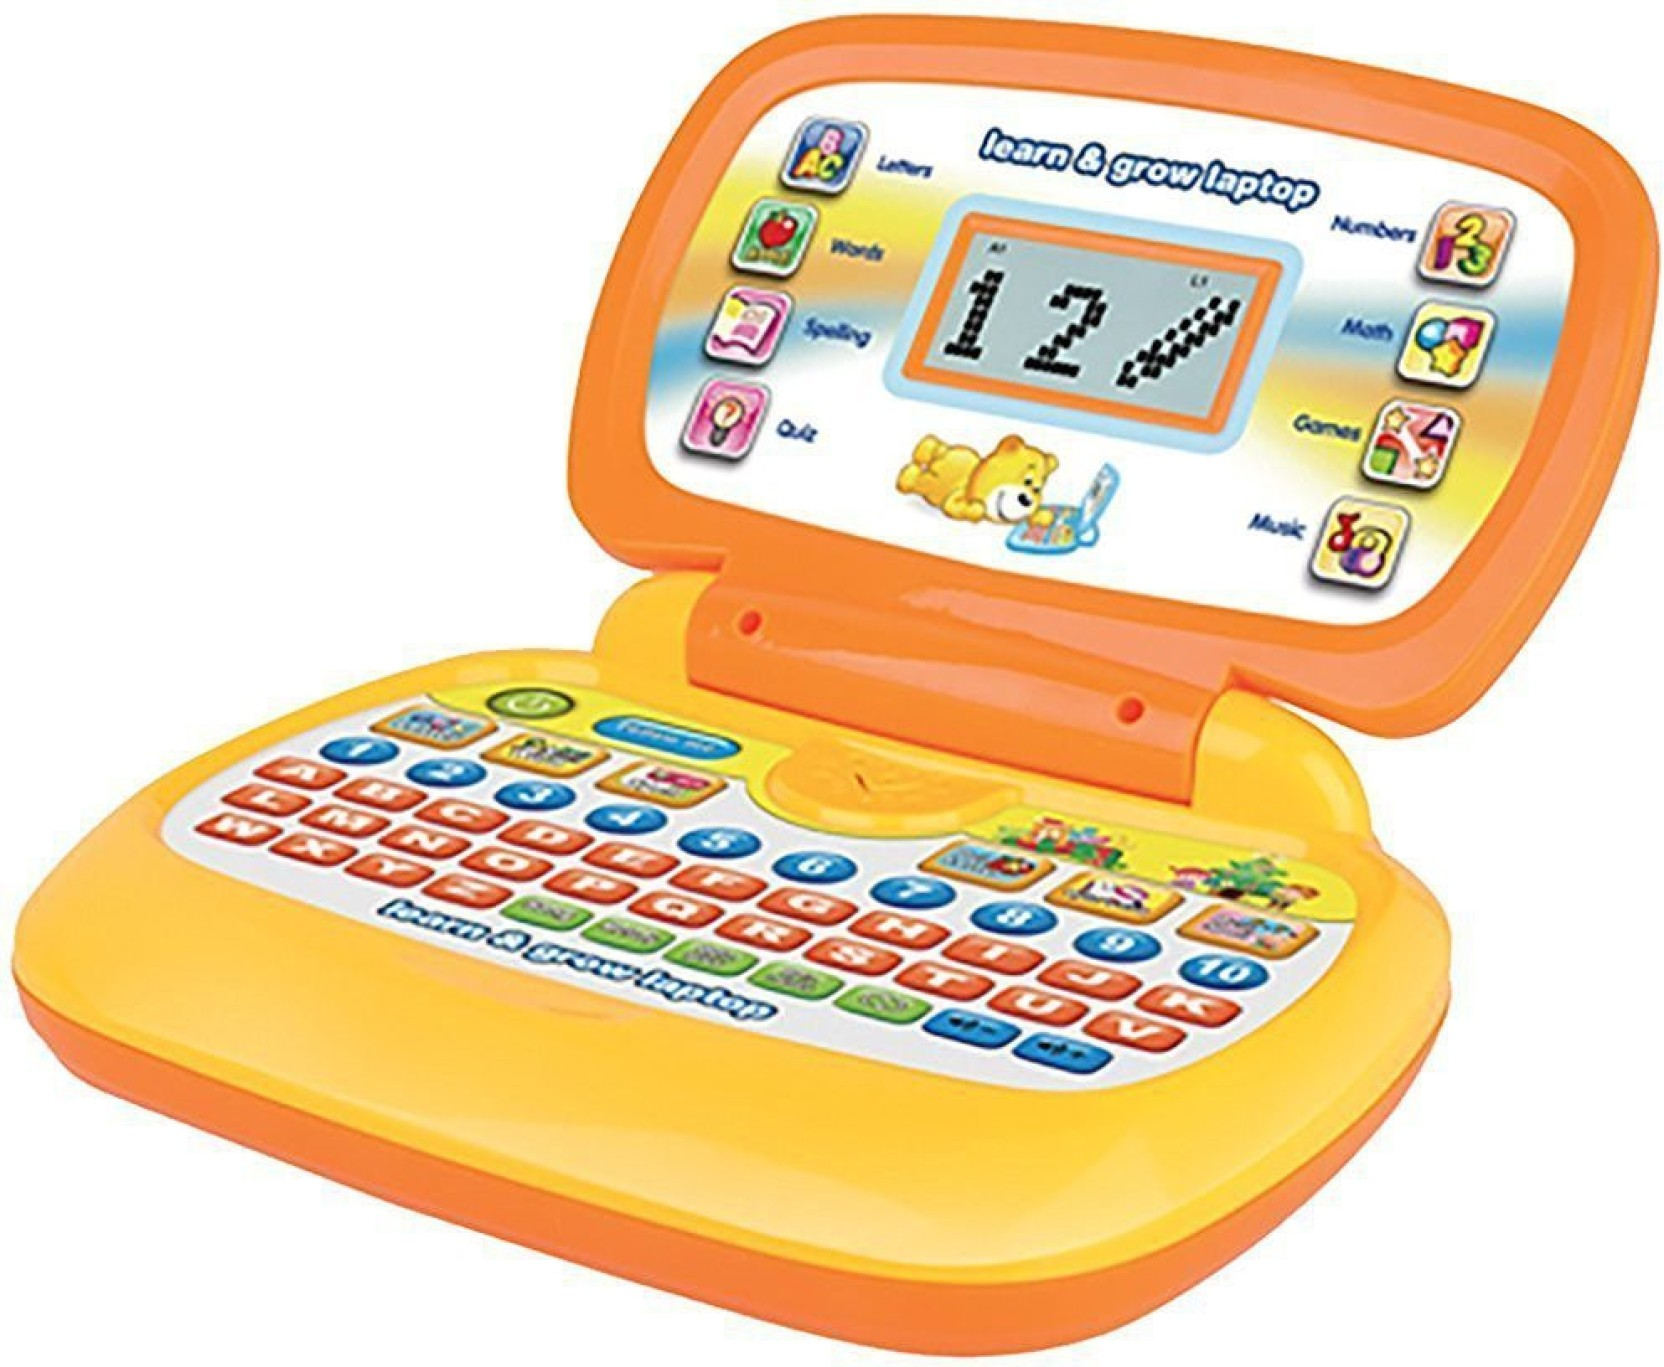 Saffire Kids Learn and Grow Laptop Price in India Buy Saffire